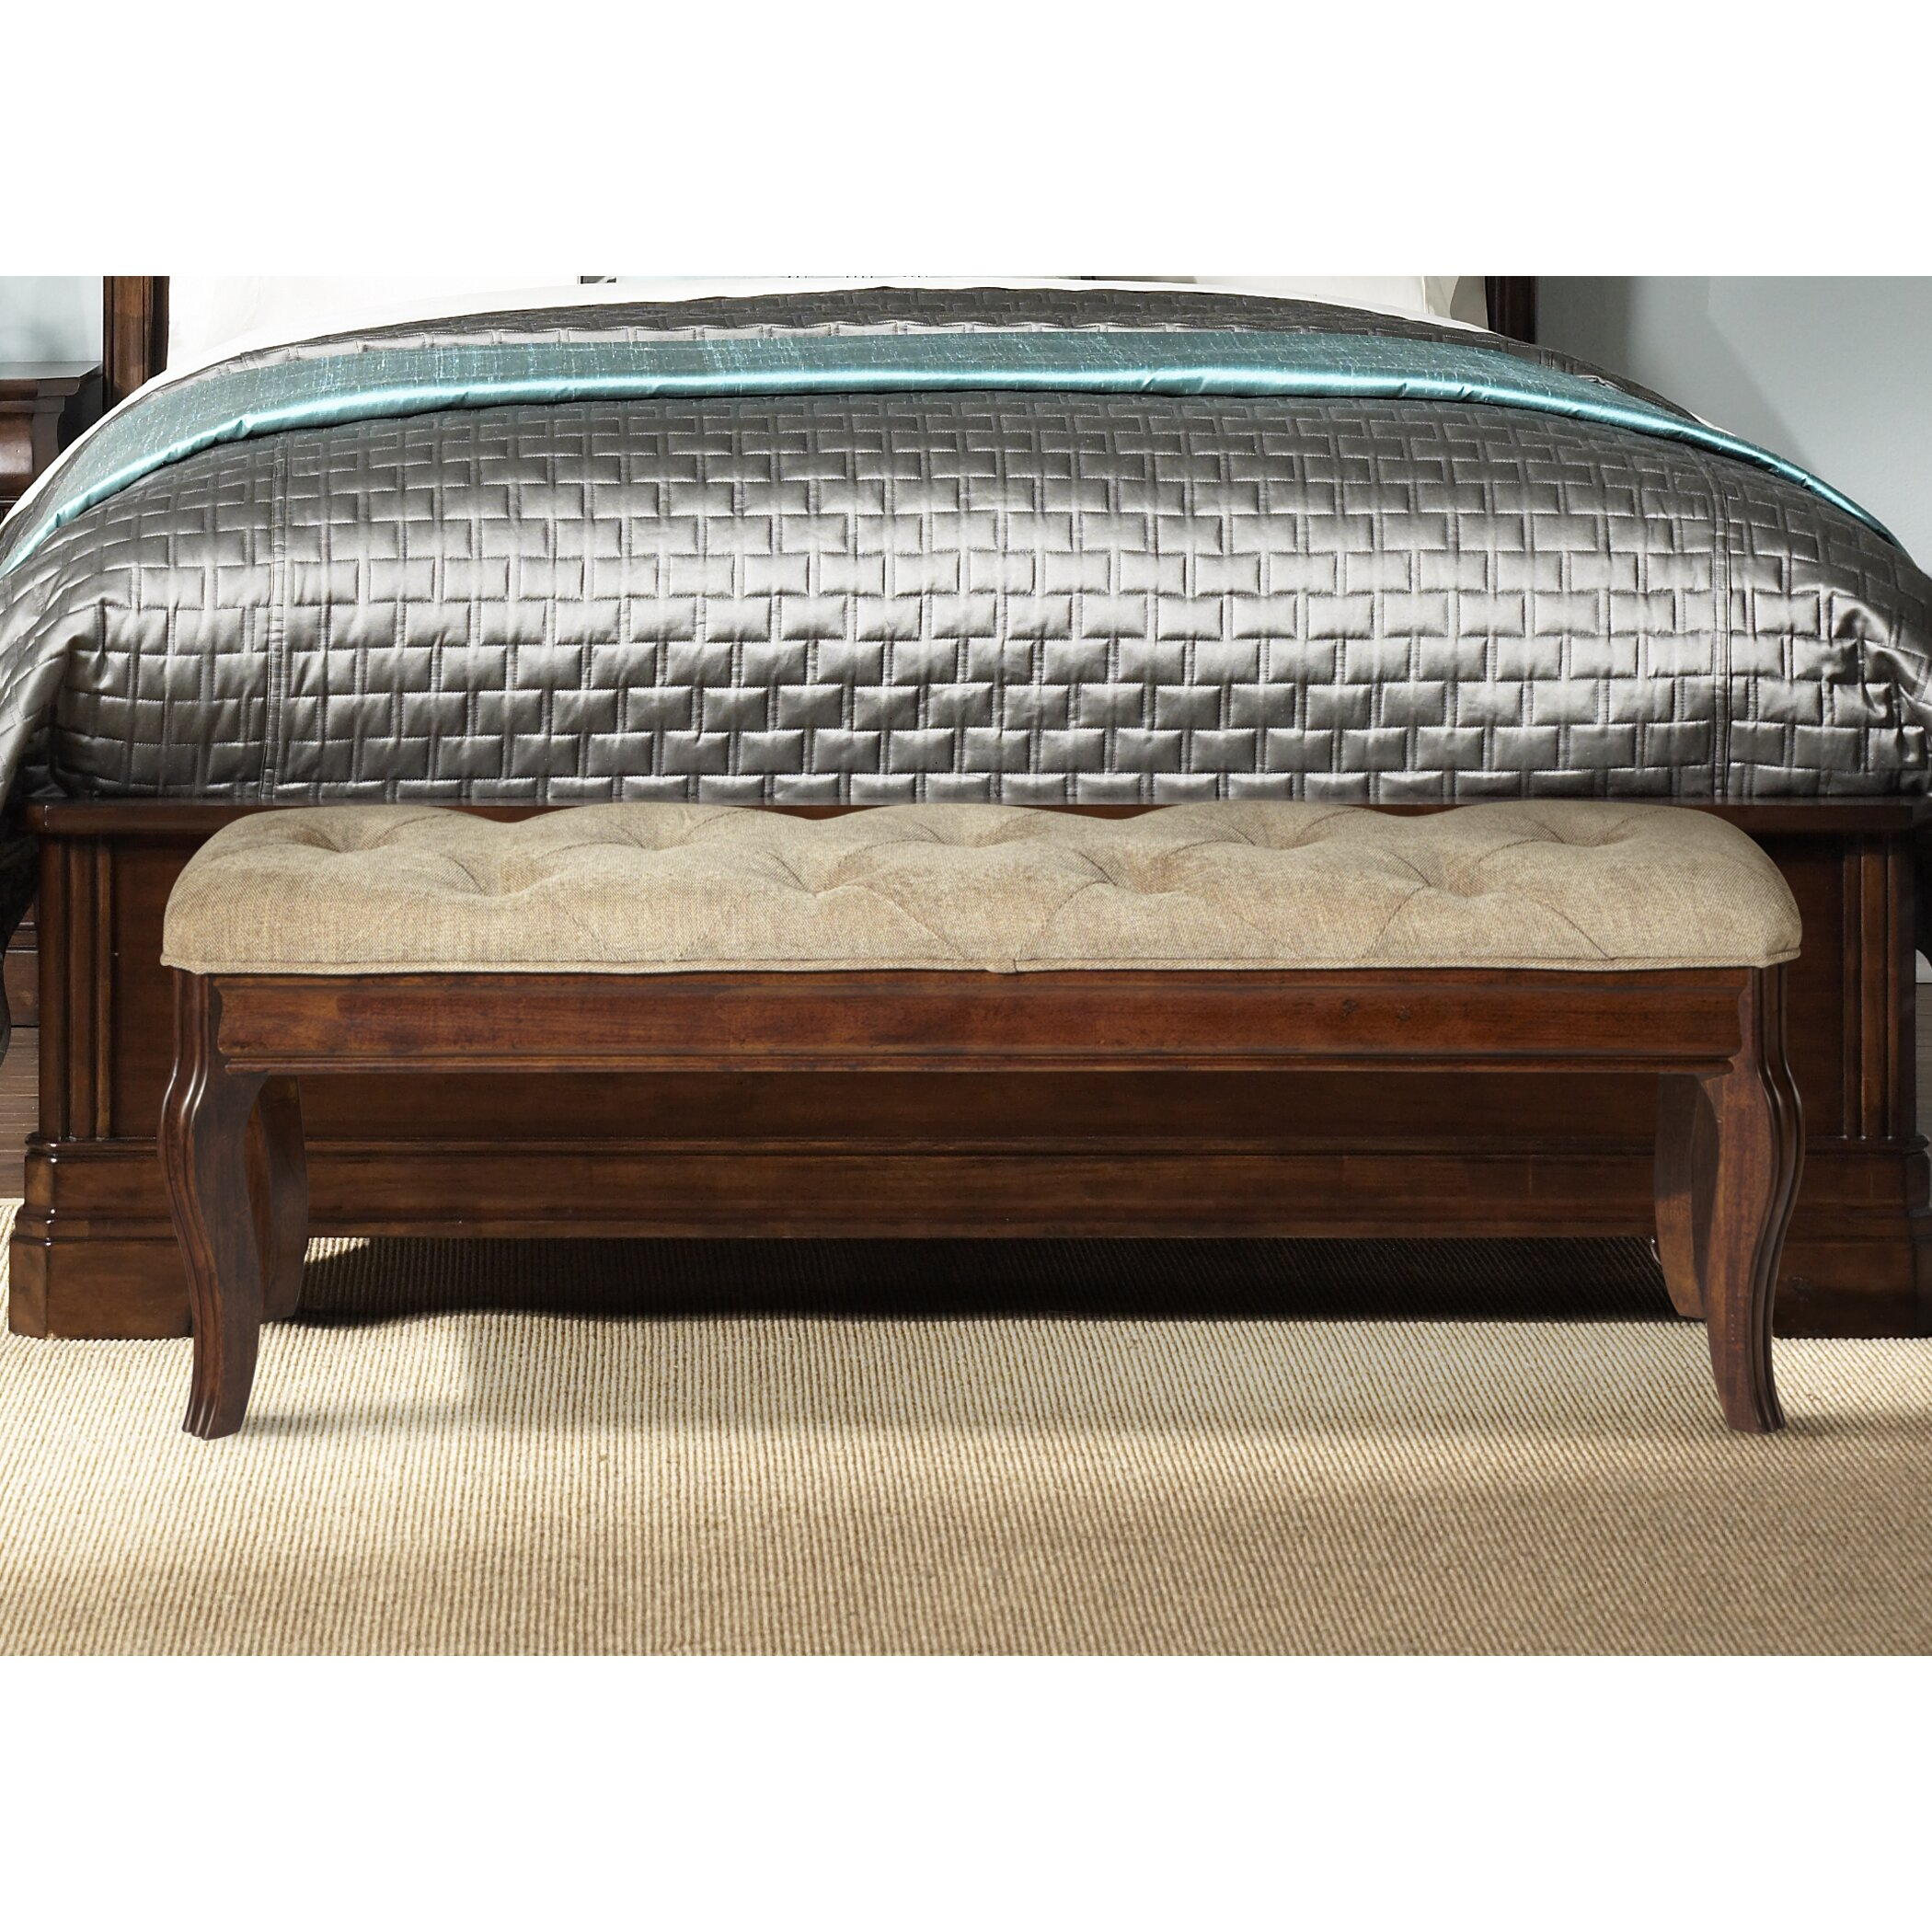 Rosalind wheeler ruppert upholstered bedroom bench for Bedroom upholstered bench